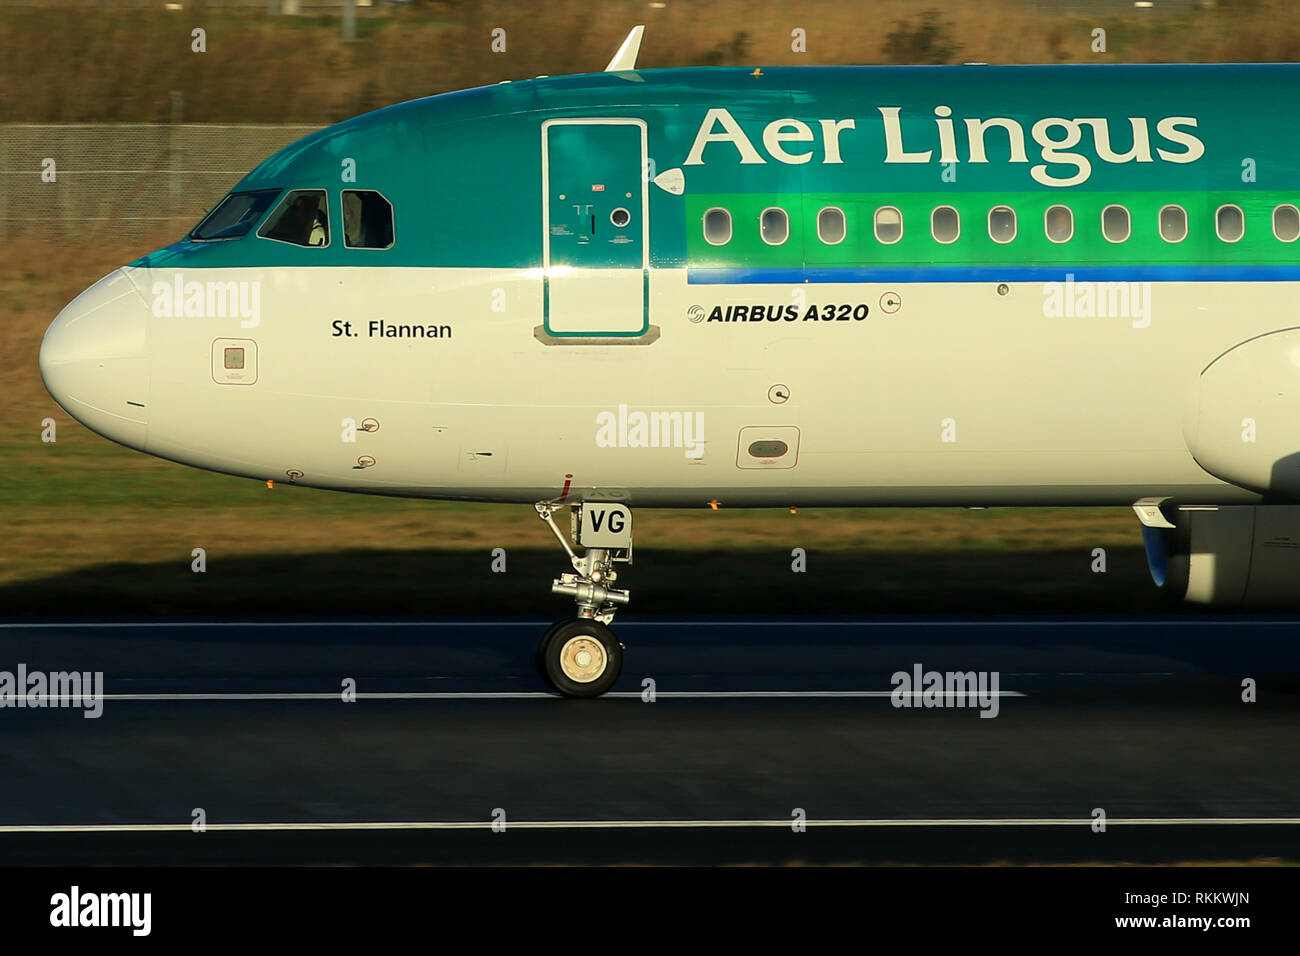 An Aer Lingus Airbus A320 prepares to take off from Belfast City Airport, Northern Ireland. The Airbus A320 family consists of short- to medium-range, narrow-body, commercial passenger twin-engine jet airlinersmanufactured by Airbus. The family includes the A318, A319, A320 and A321, as well as the ACJ business jet. The A320s are also named A320ceo (current engine option) after the introduction of the A320neo (new engine option) Final assembly of the family takes place in Toulouse, France, and Hamburg, Germany. A plant in Tianjin, China, has also been producing aircraft for Chinese airlines Stock Photo